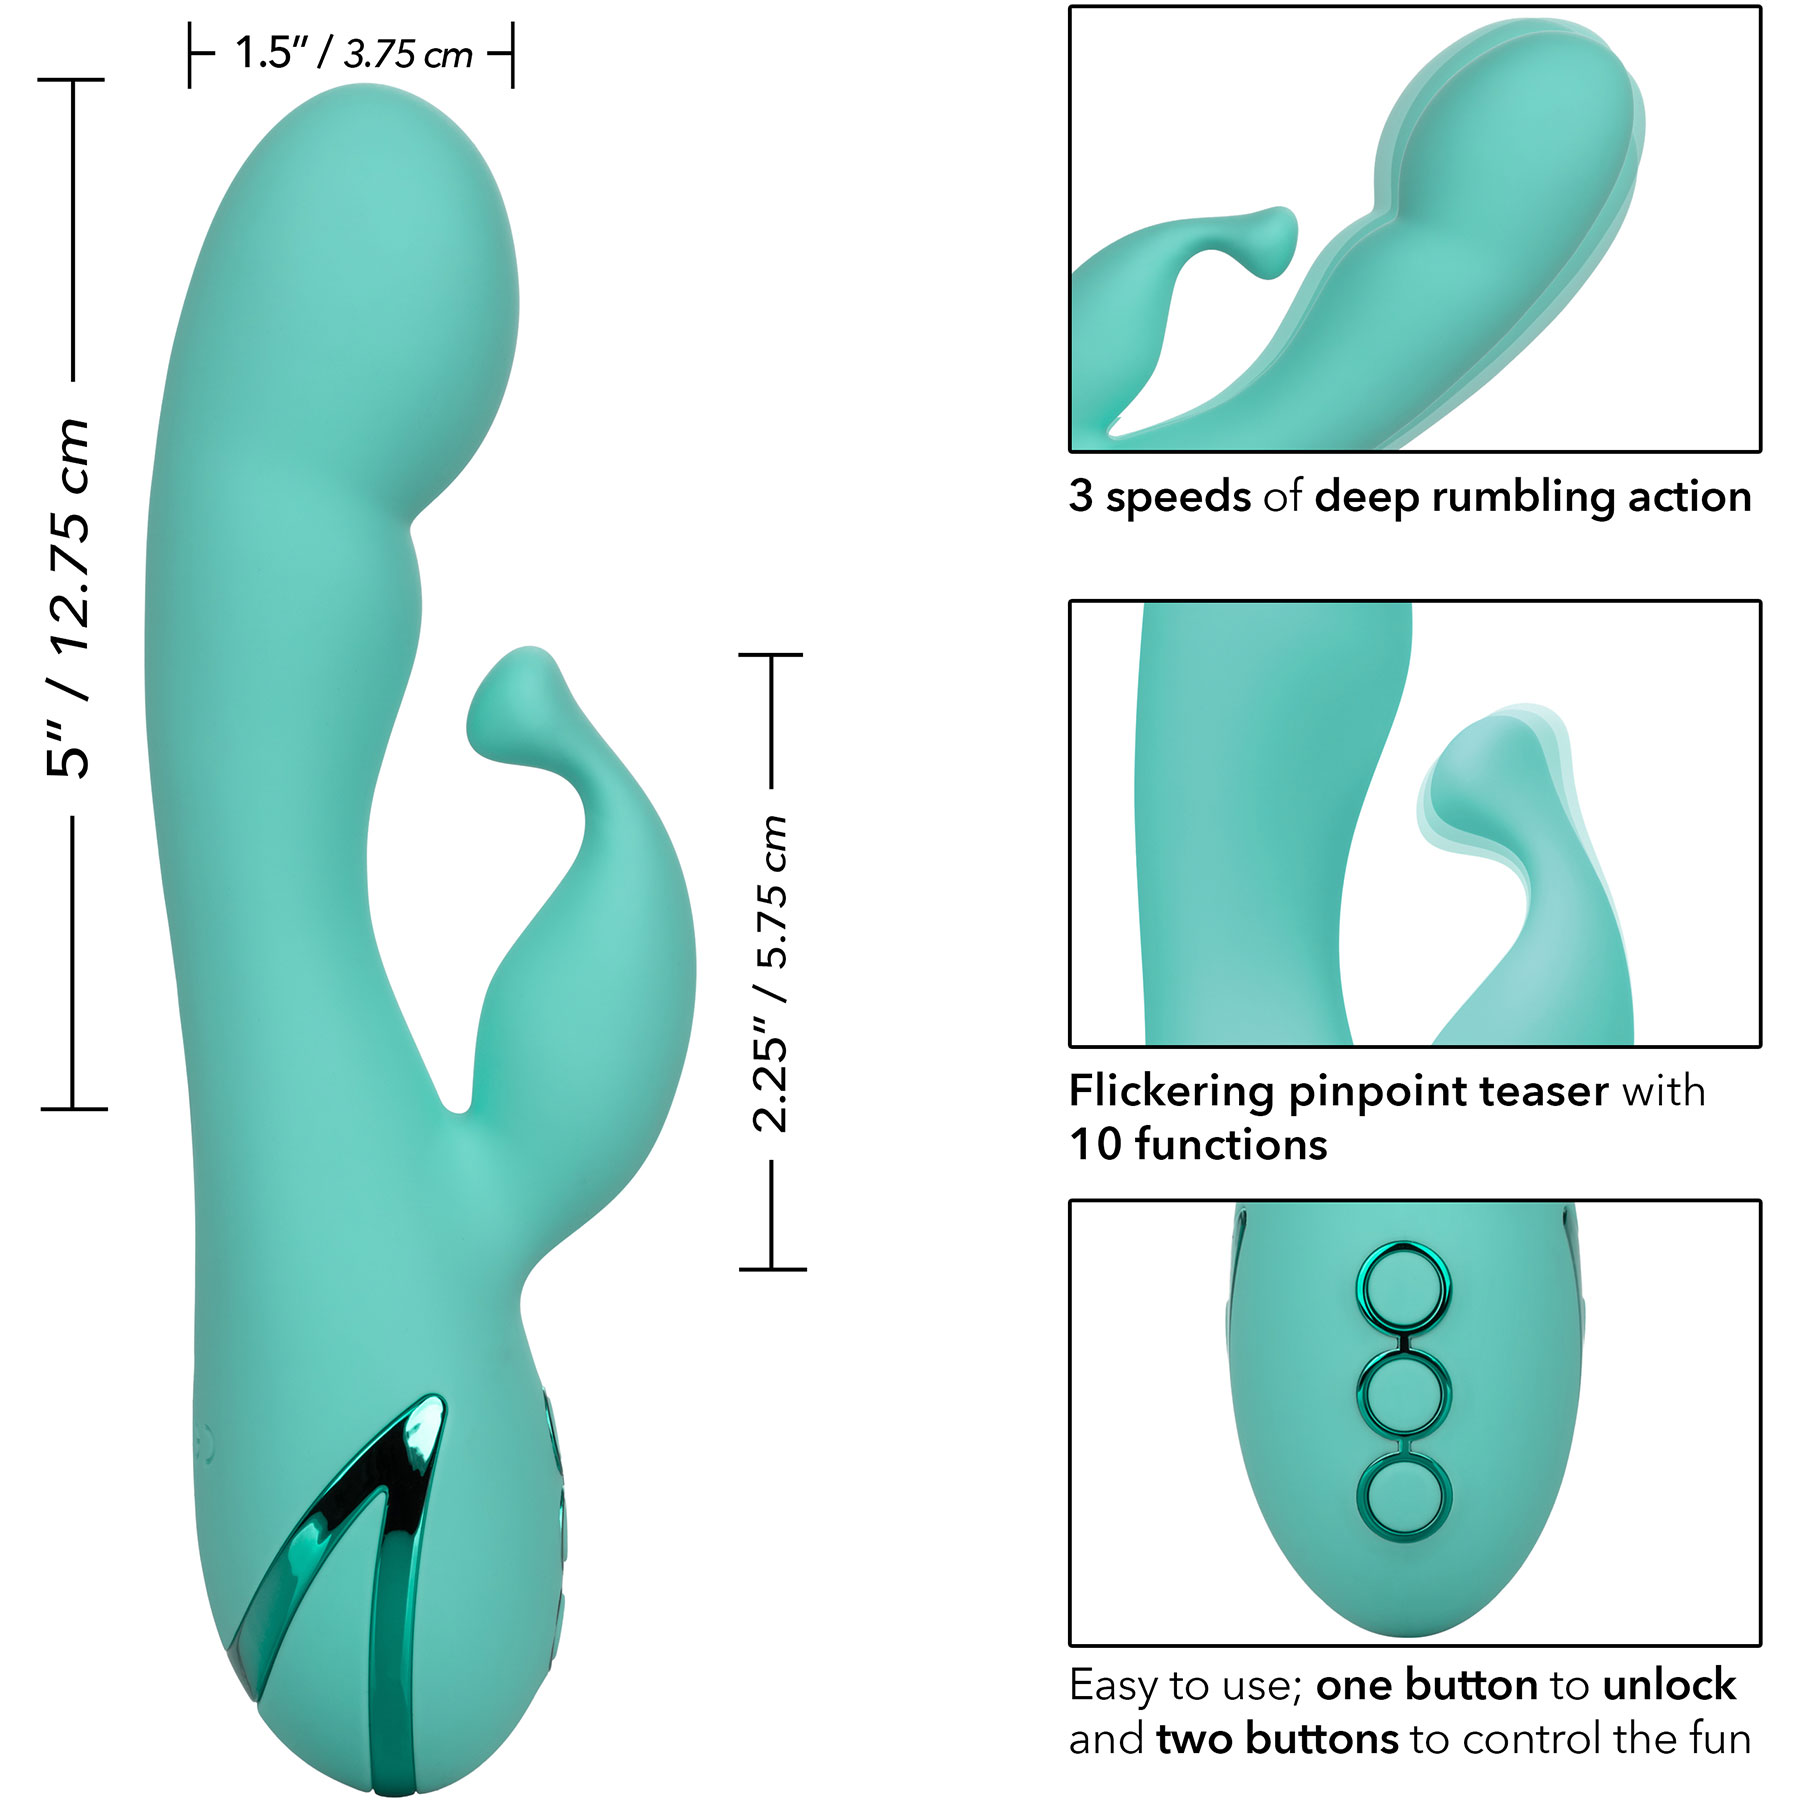 California Dreaming Tahoe Temptation Rabbit Style Silicone Vibrator - Measurements